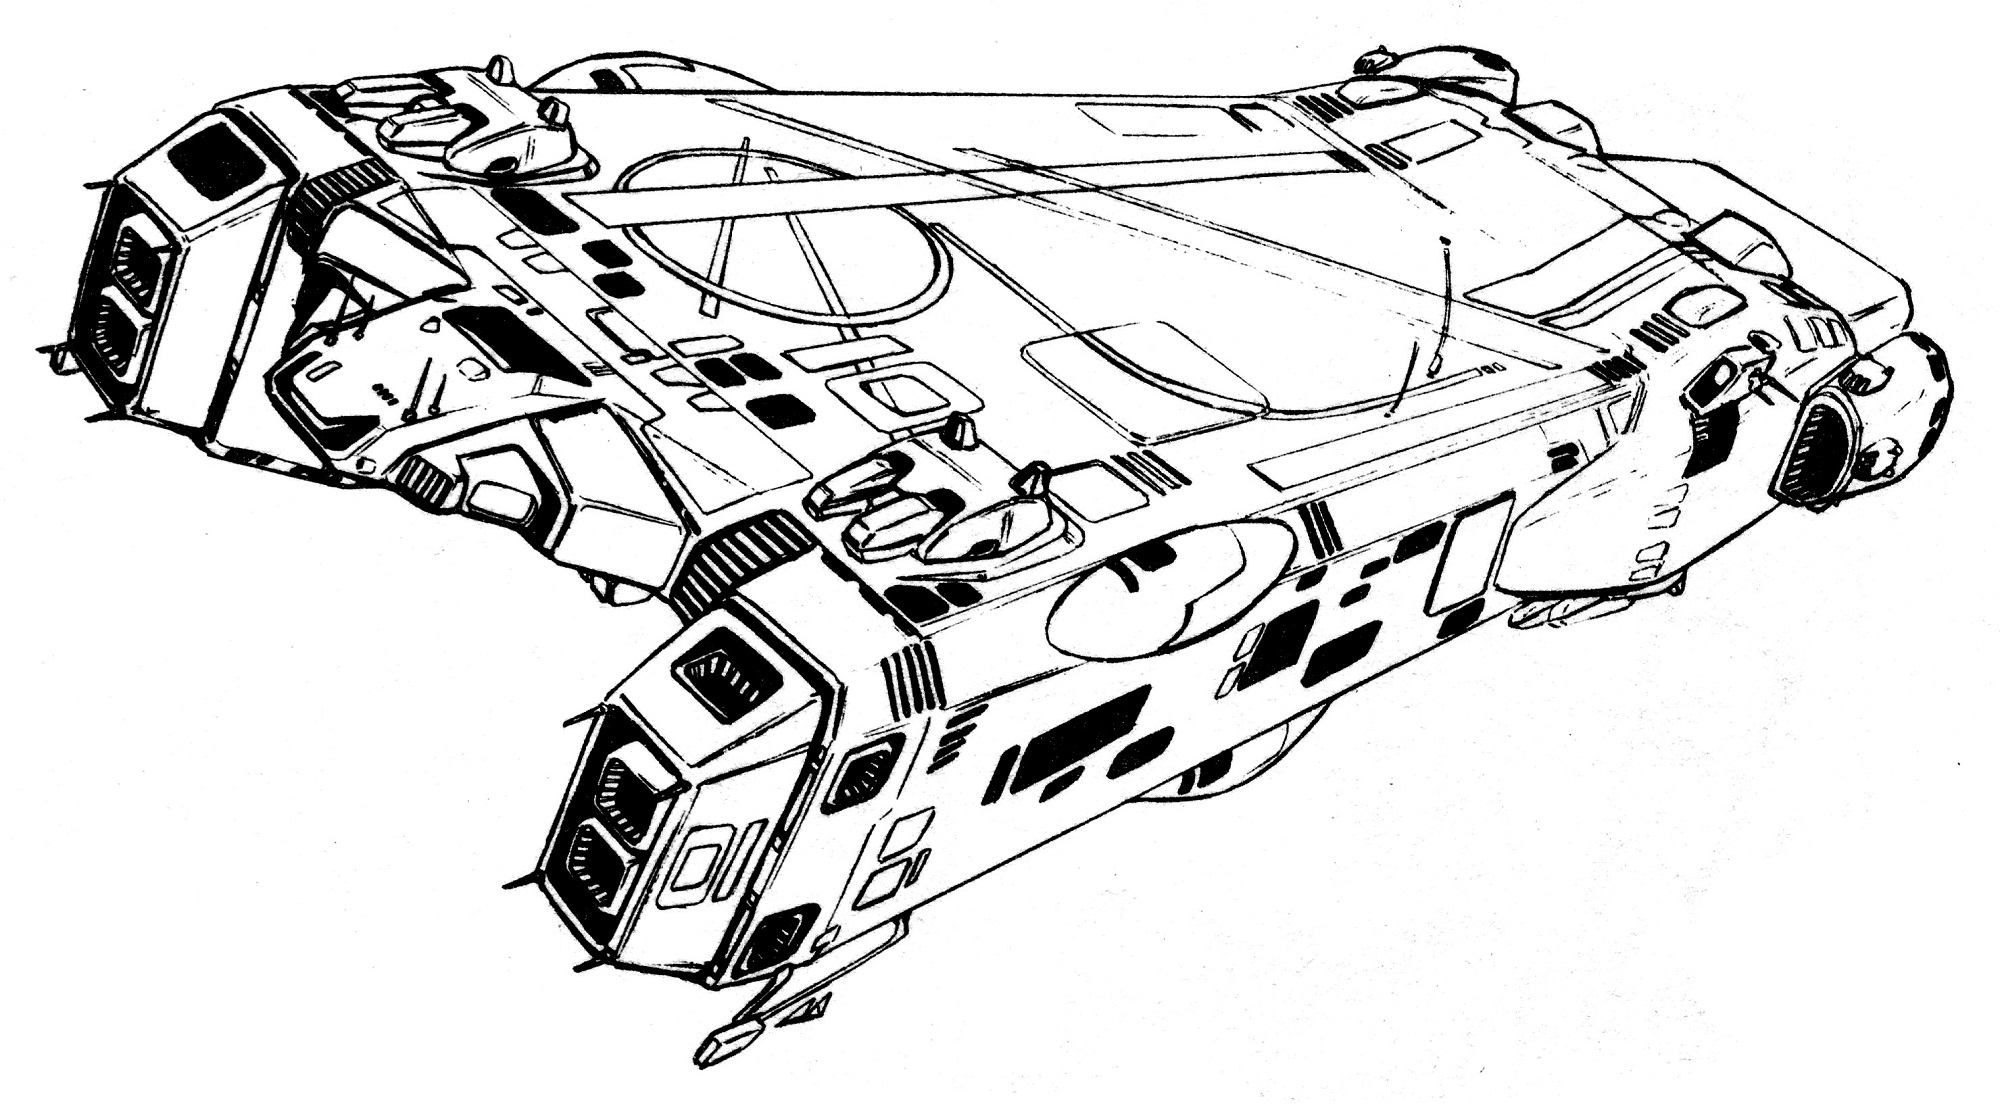 RRG Bomarck II Surface/Ship-Launched Anti-Spaceship